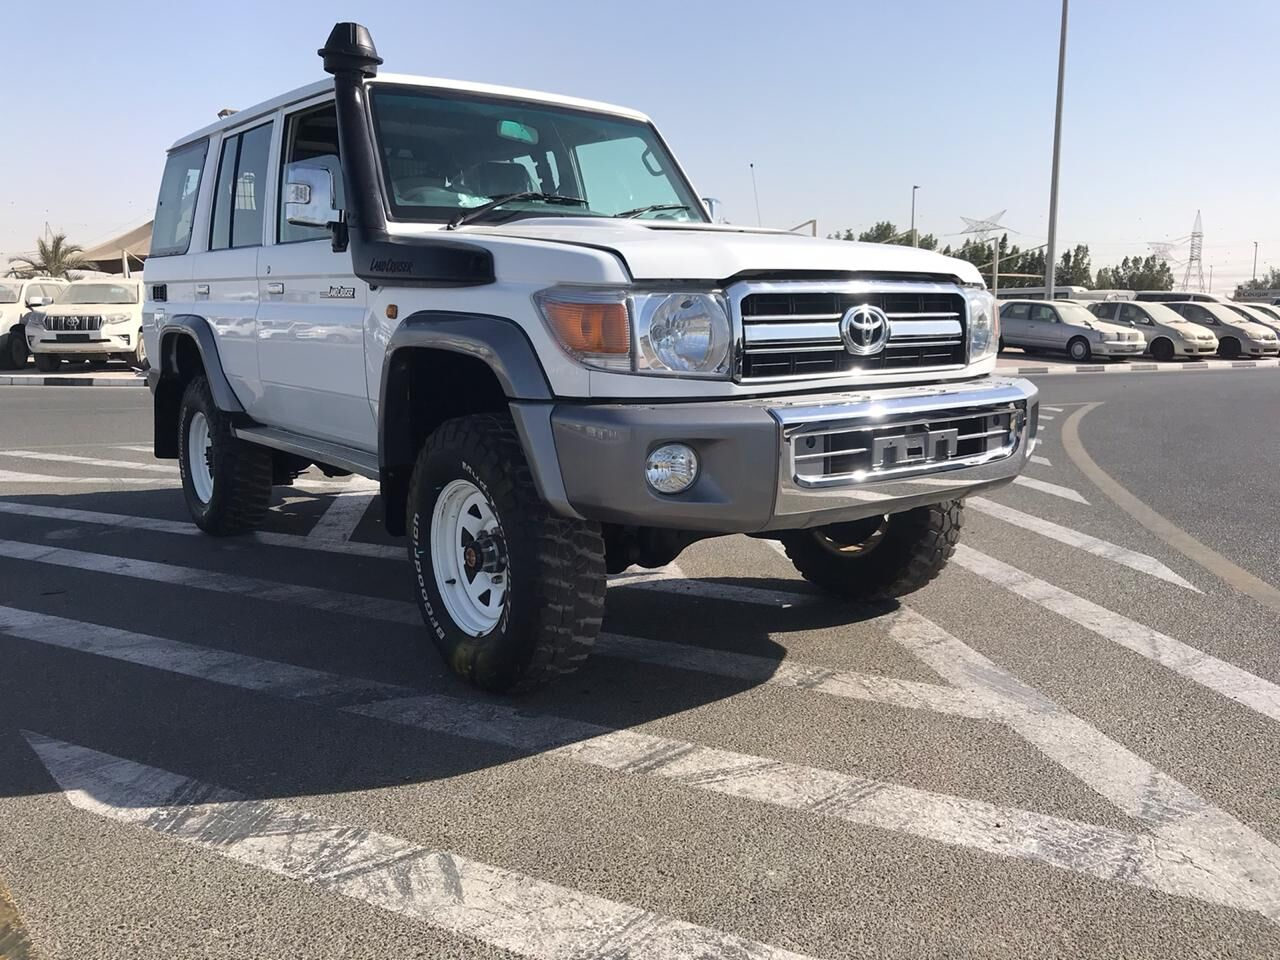 Used RHD Toyota Land Cruiser Hardtop LC76 4.5L Diesel 2012 Model